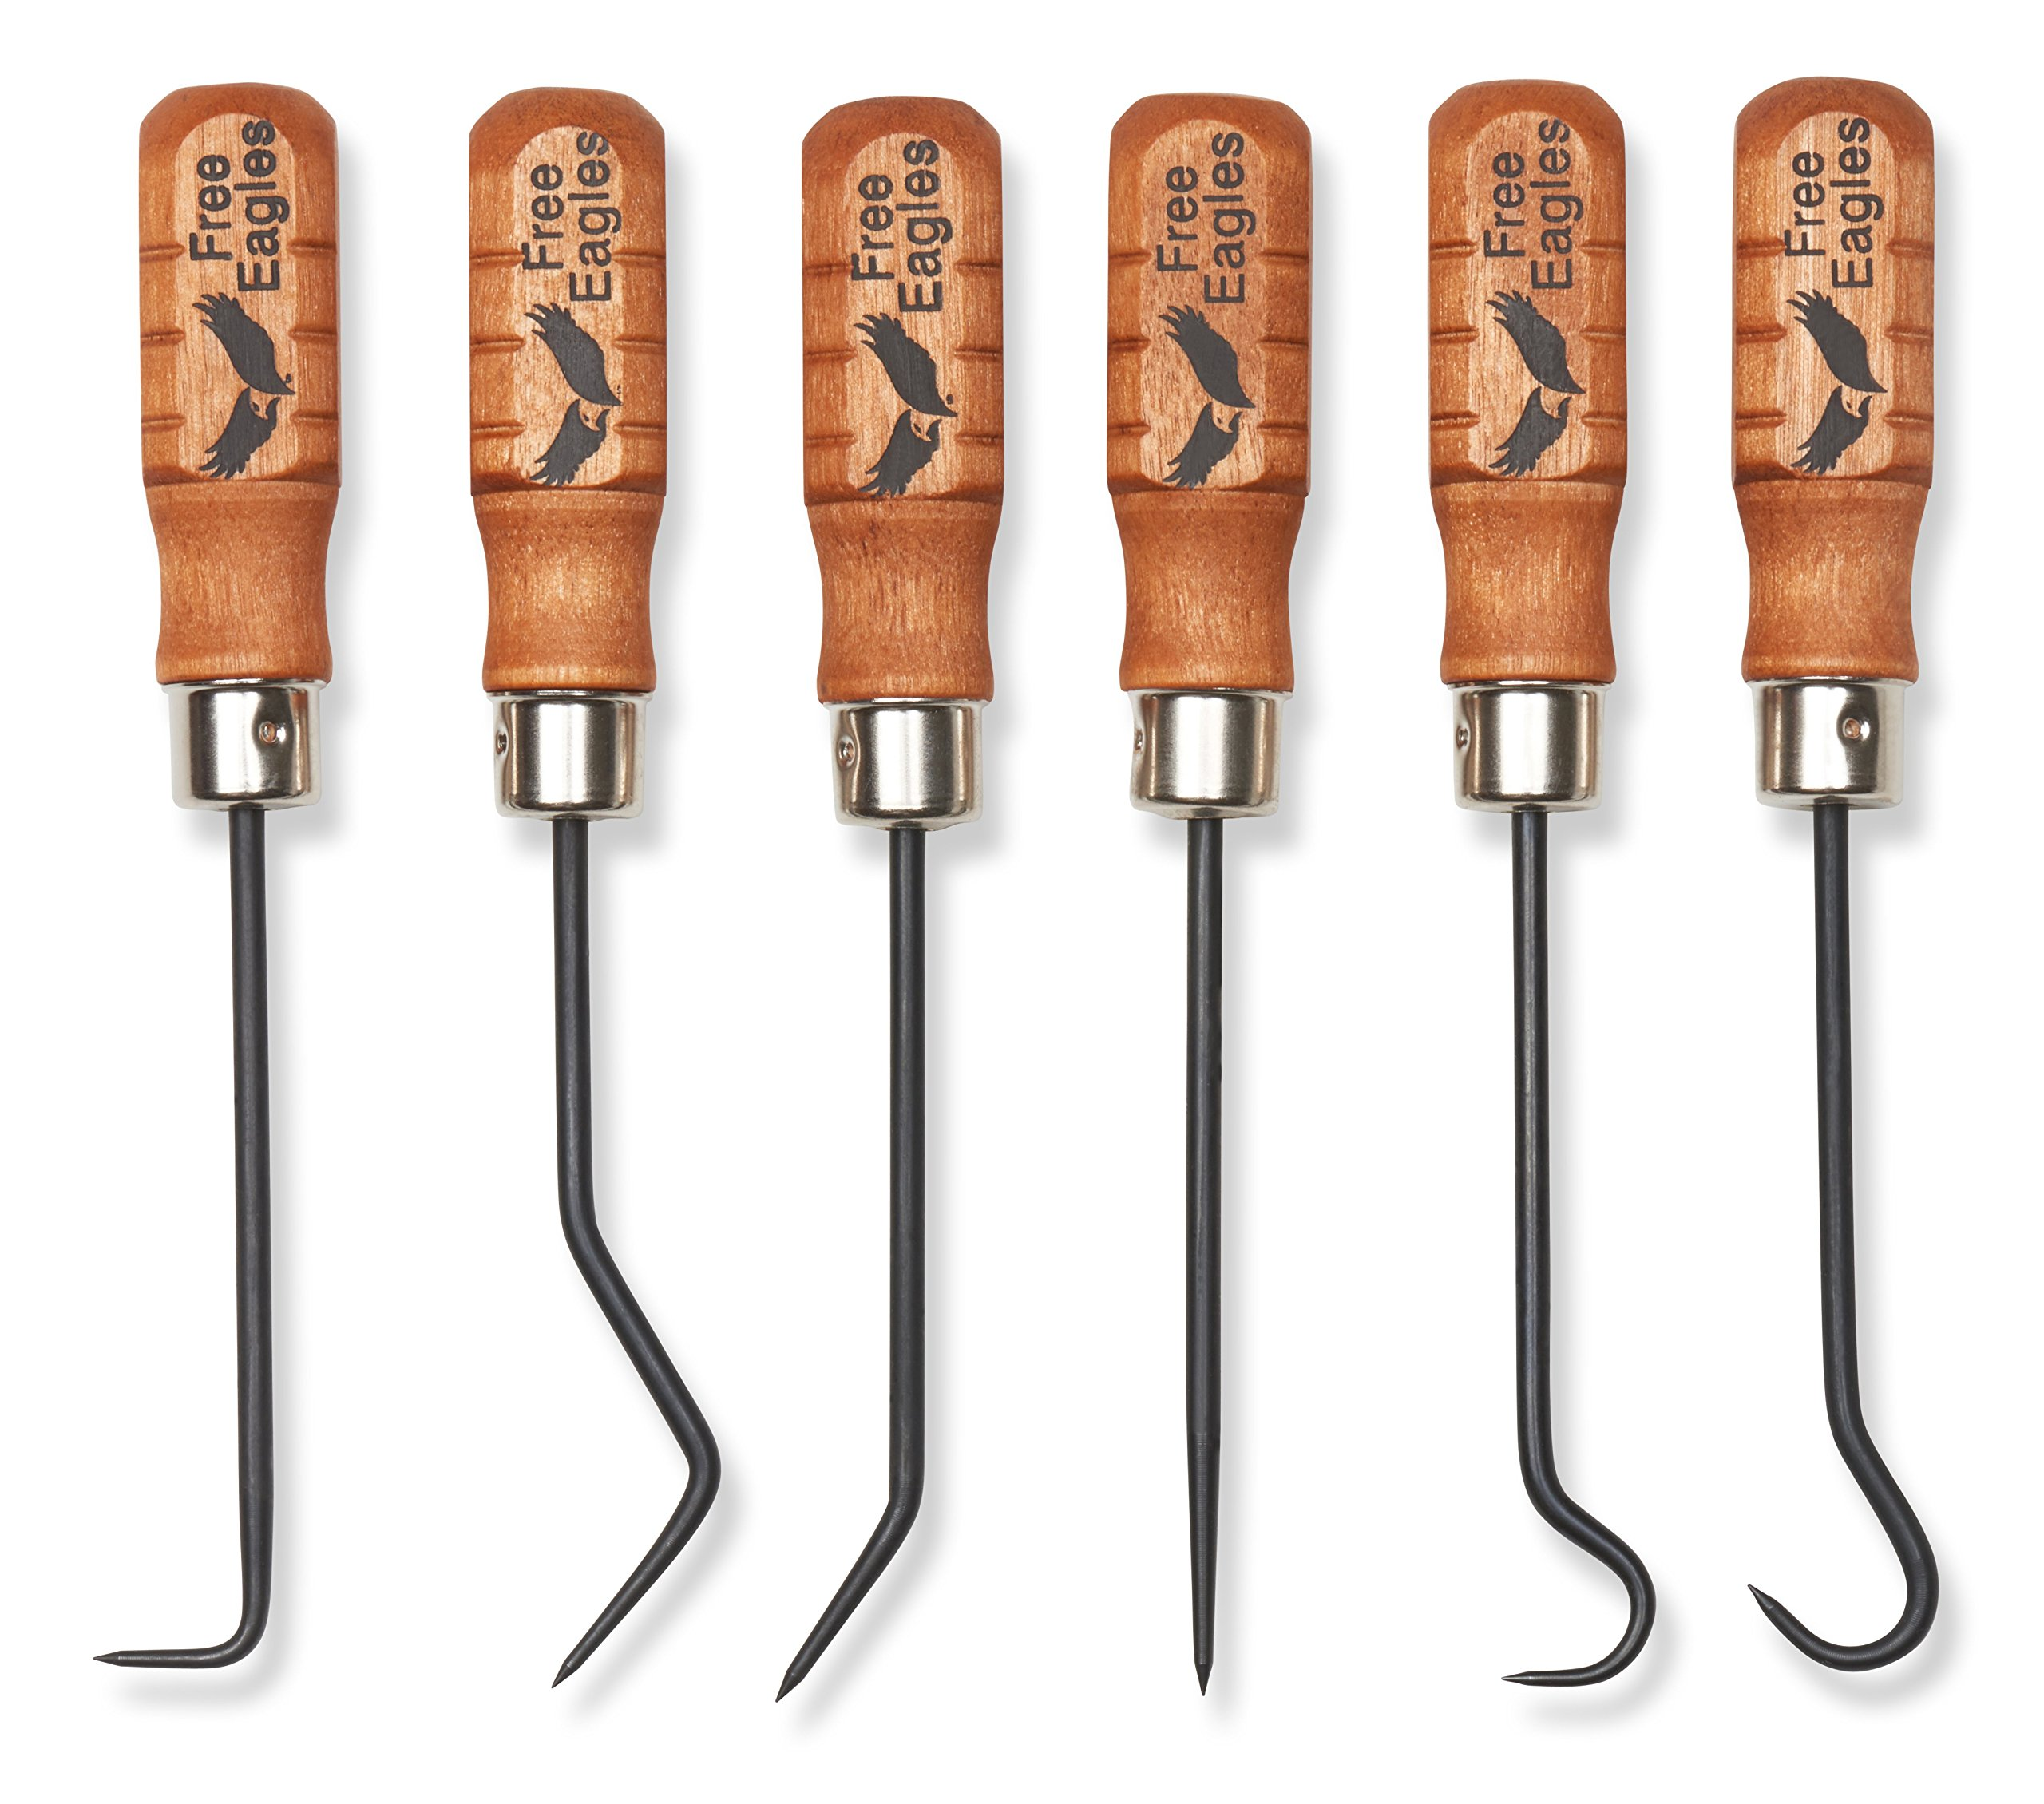 Hook And Pick Tool Set - 6 Multipurpose Handcrafted Quality Mini Tools - Durable, Rigid and Heavy Duty Chromium Vanadium Forge Steel - These All Purpose Tools Are Made In The USA - Free Eagles, LLC